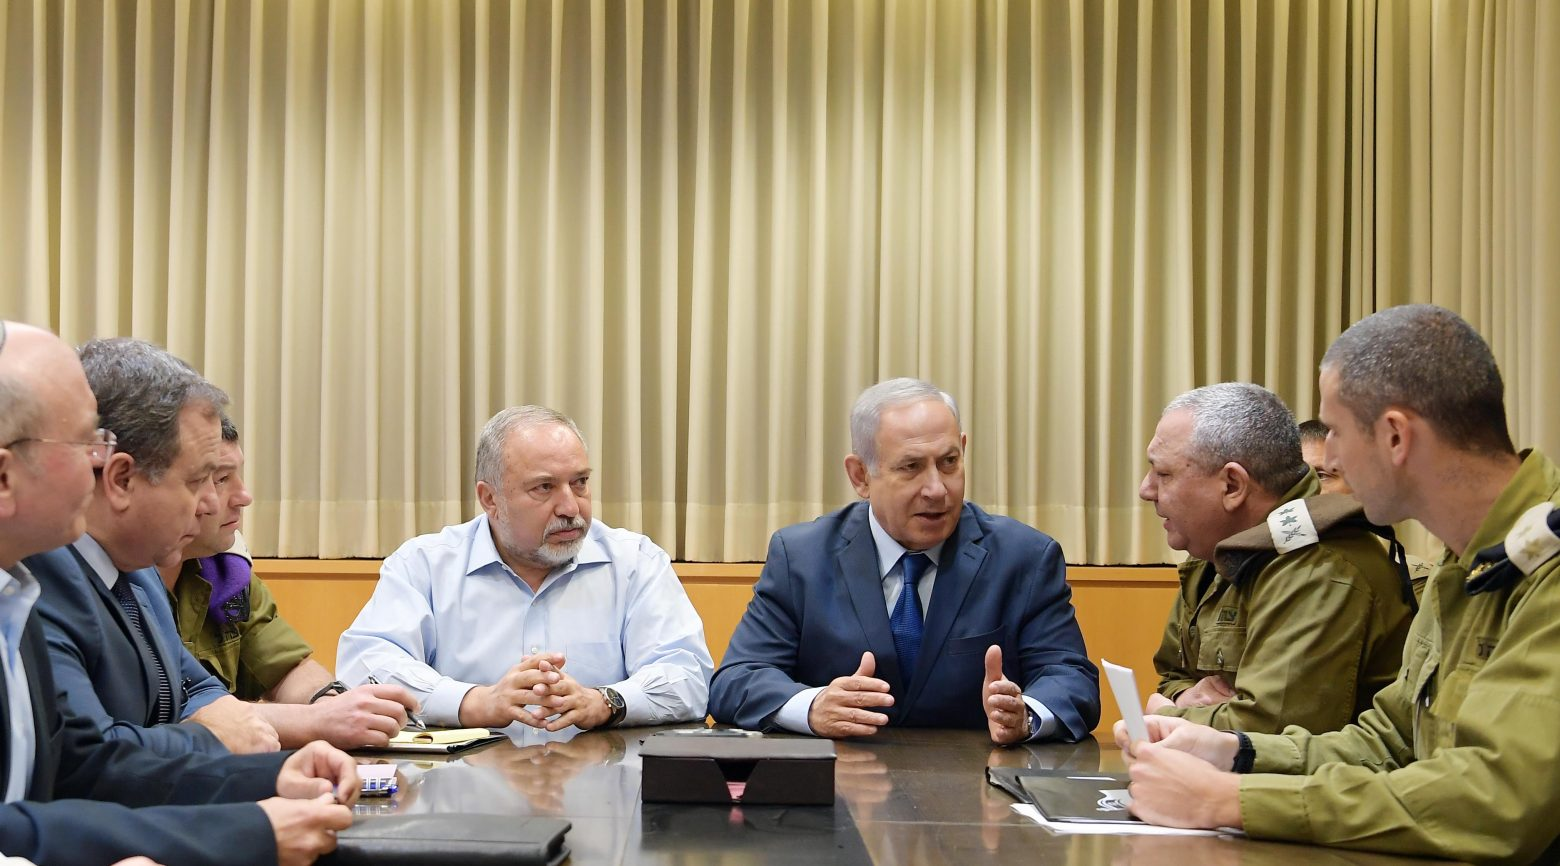 Prime Minister Benjamin Netanyahu, this evening, (Monday, 12 November, 2018) at the Defense Ministry in Tel Aviv, is holding a security consultation with the Minister of Defense, the IDF Chief of Staff and senior members of the defense establishment and the IDF. Photo by Amos Ben Gershom, GPO